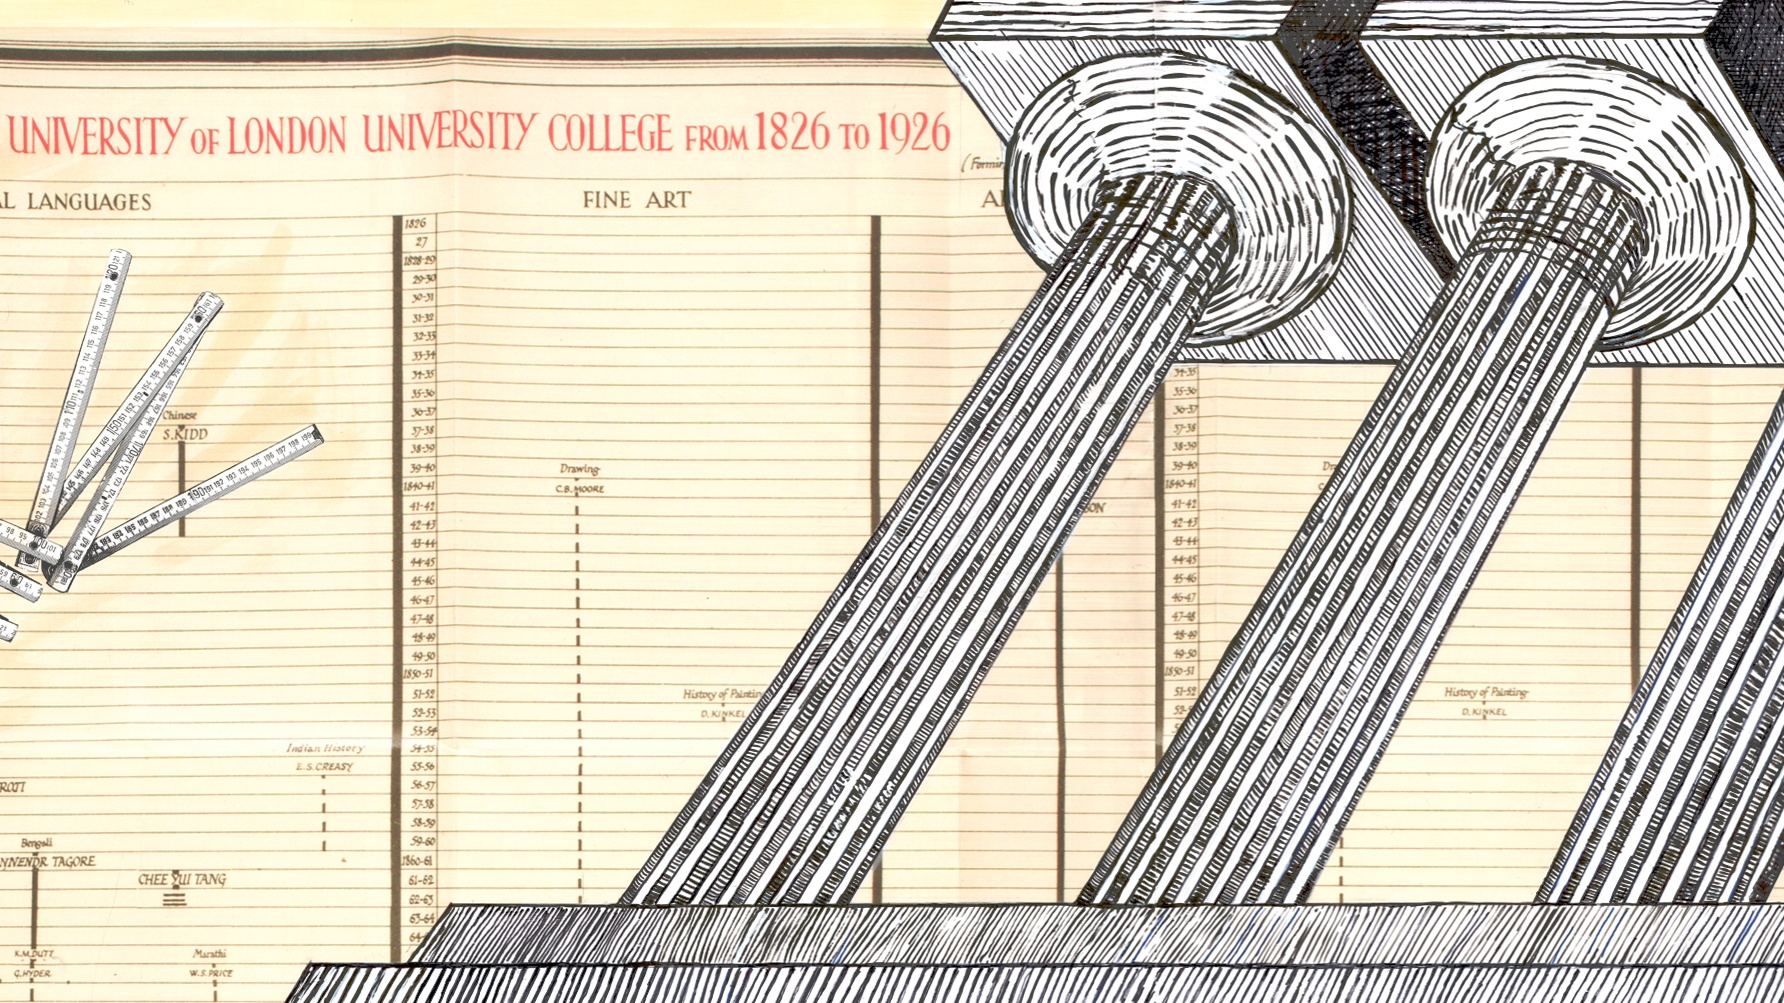 Collage of paint and ink showing UCL growth chart overlaid with columns of the university building